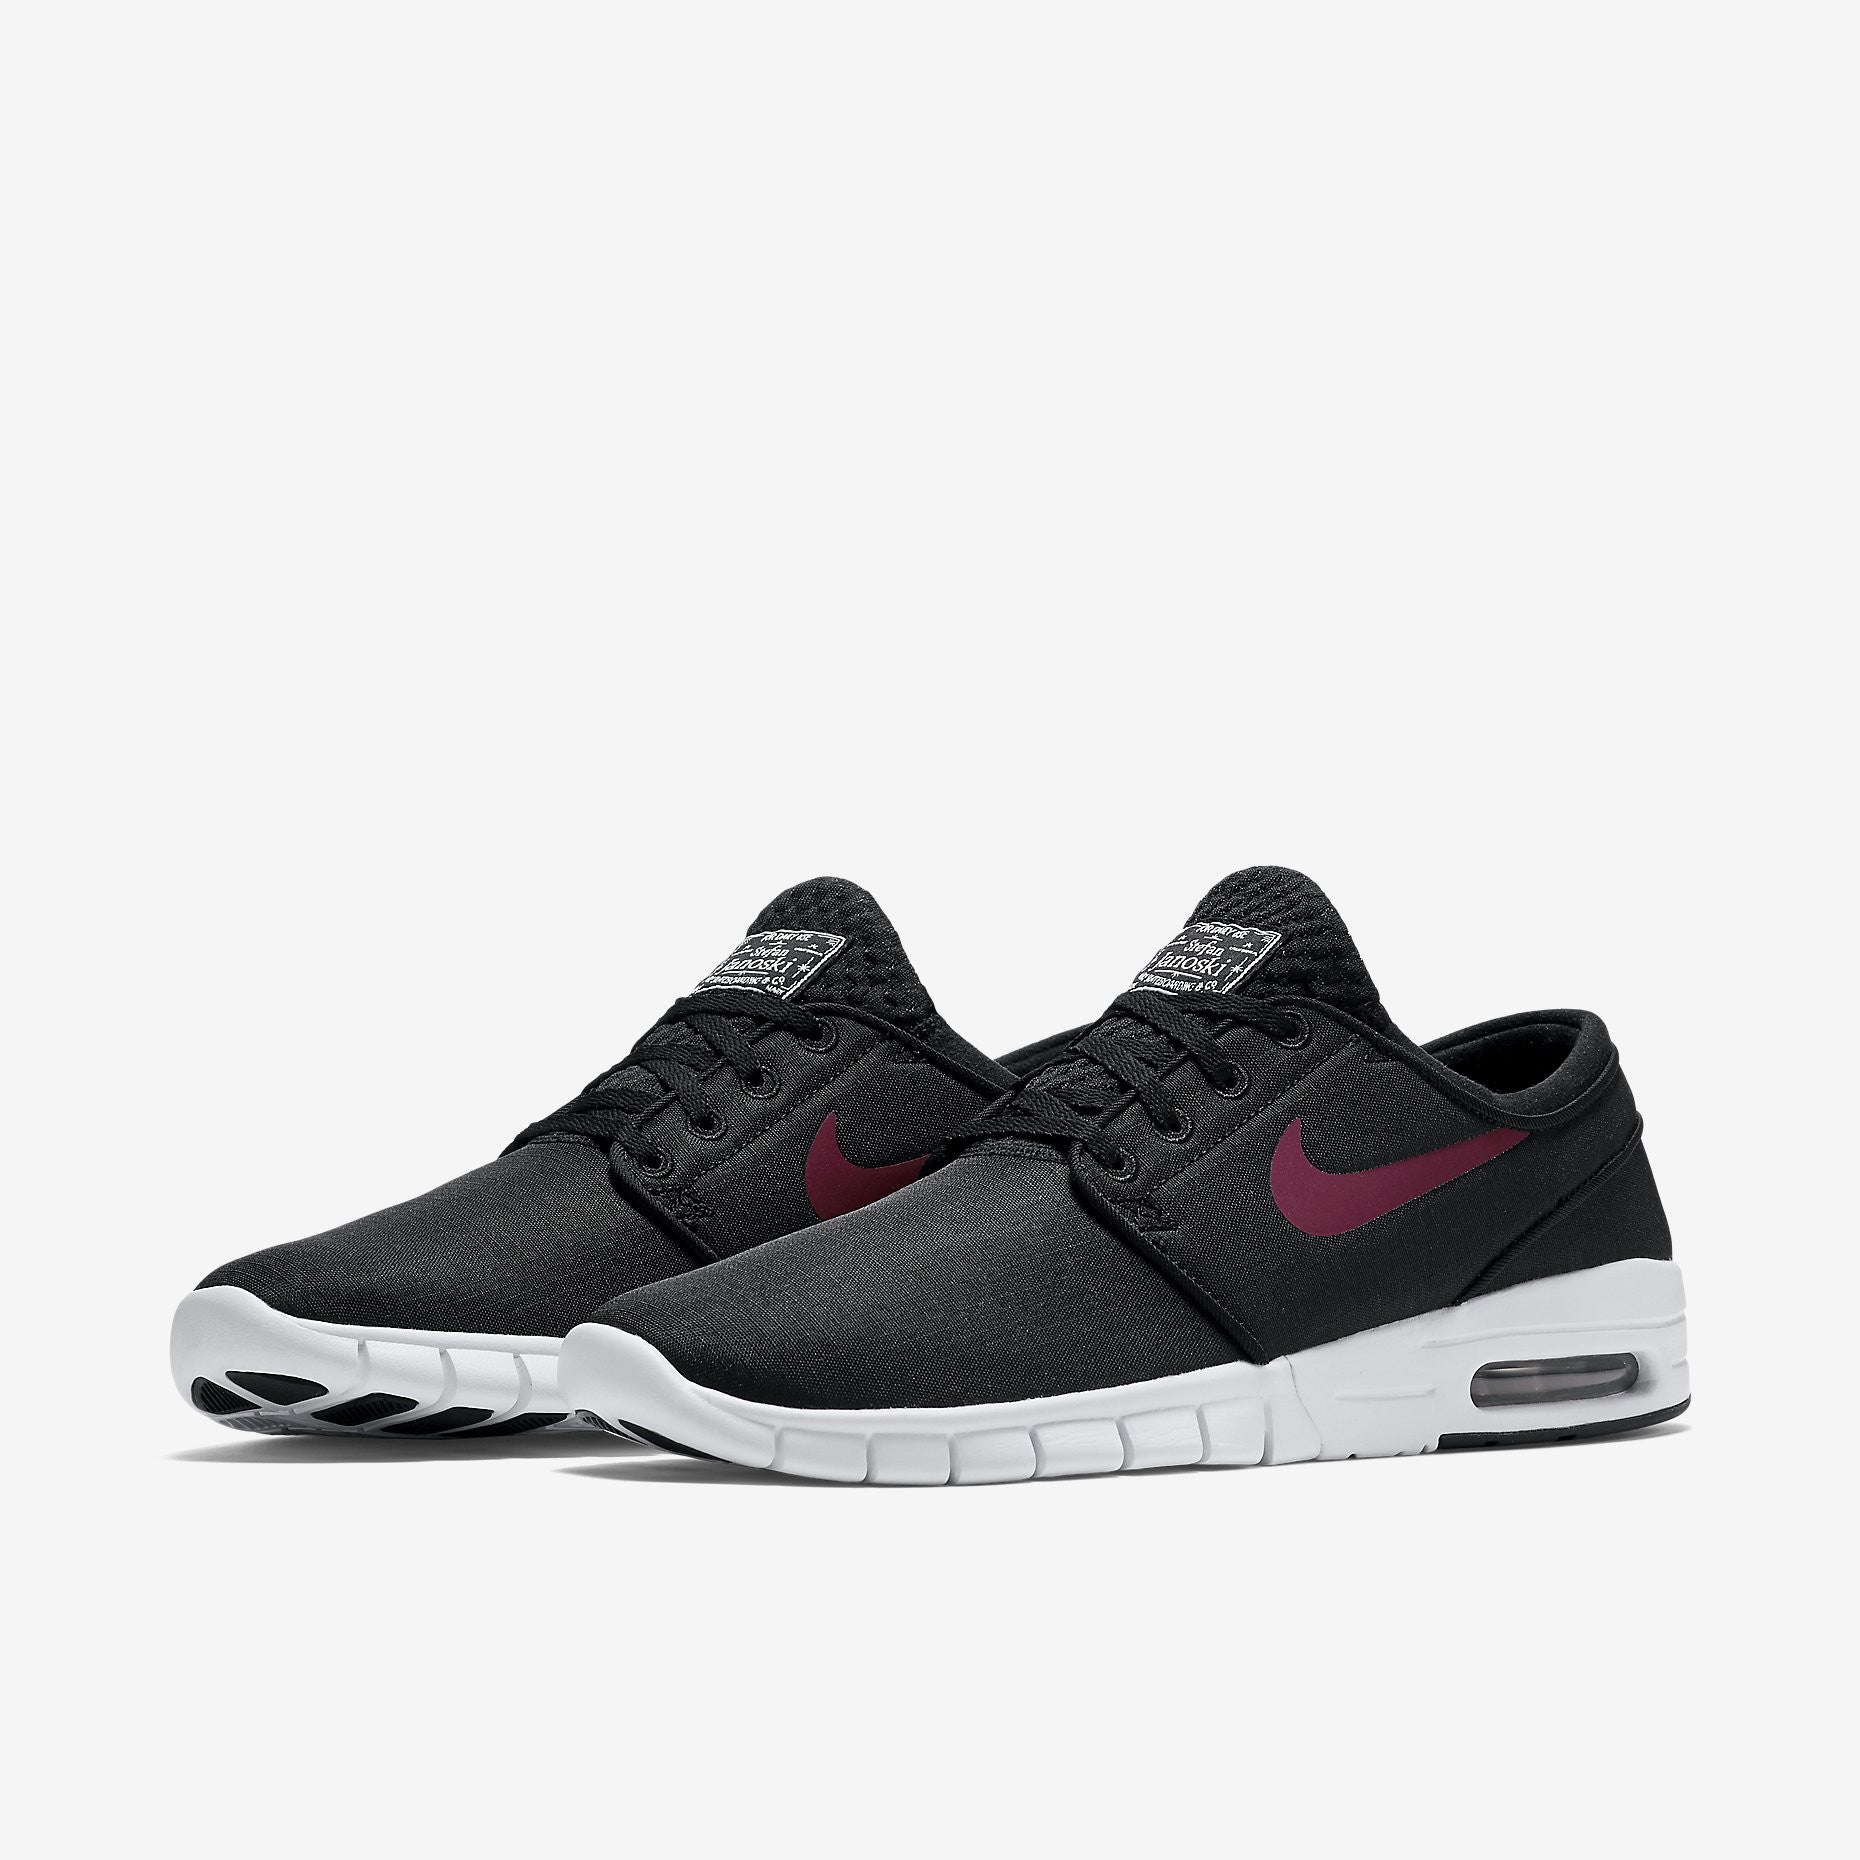 Nike SB Stefan Janoski MAX - Black/Team Red - White